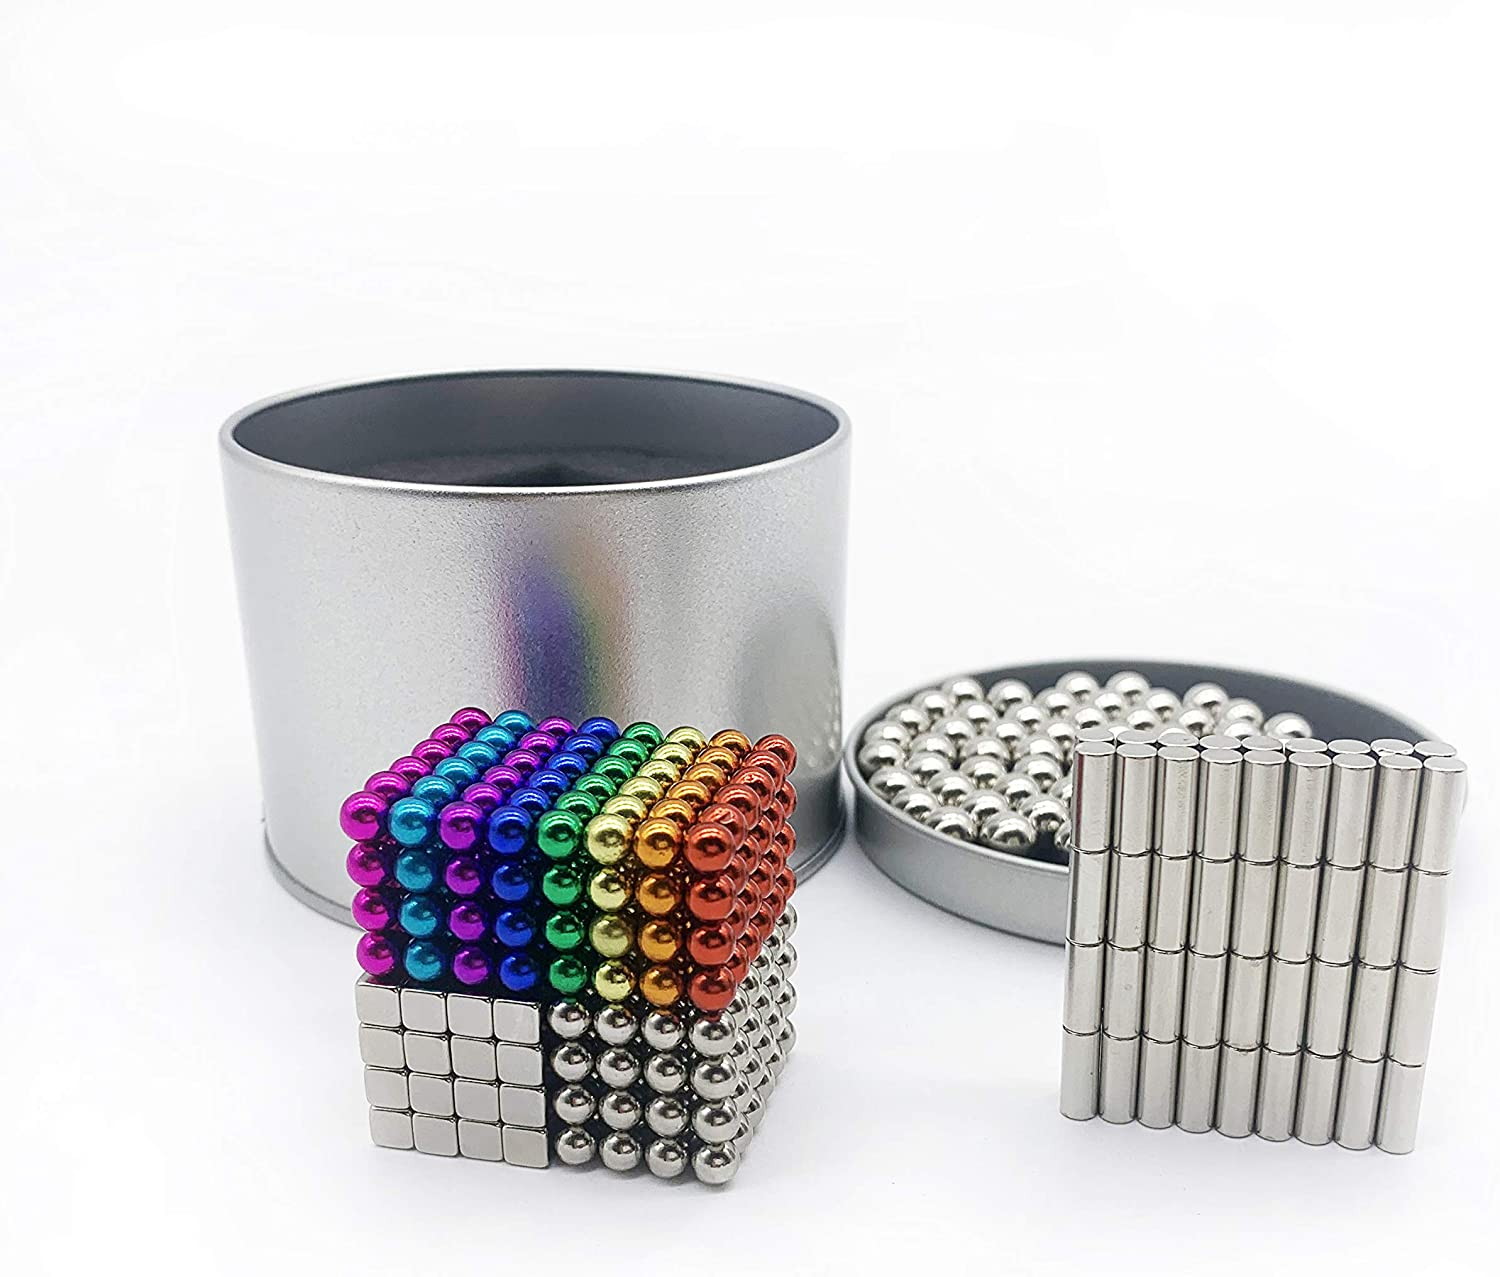 sunsoy Magnetic Balls Rainbow 510 PCS 5 MM Decompression Office Desktop Toys Creative Design Cool Office Stress Reliever for Teens and Adults